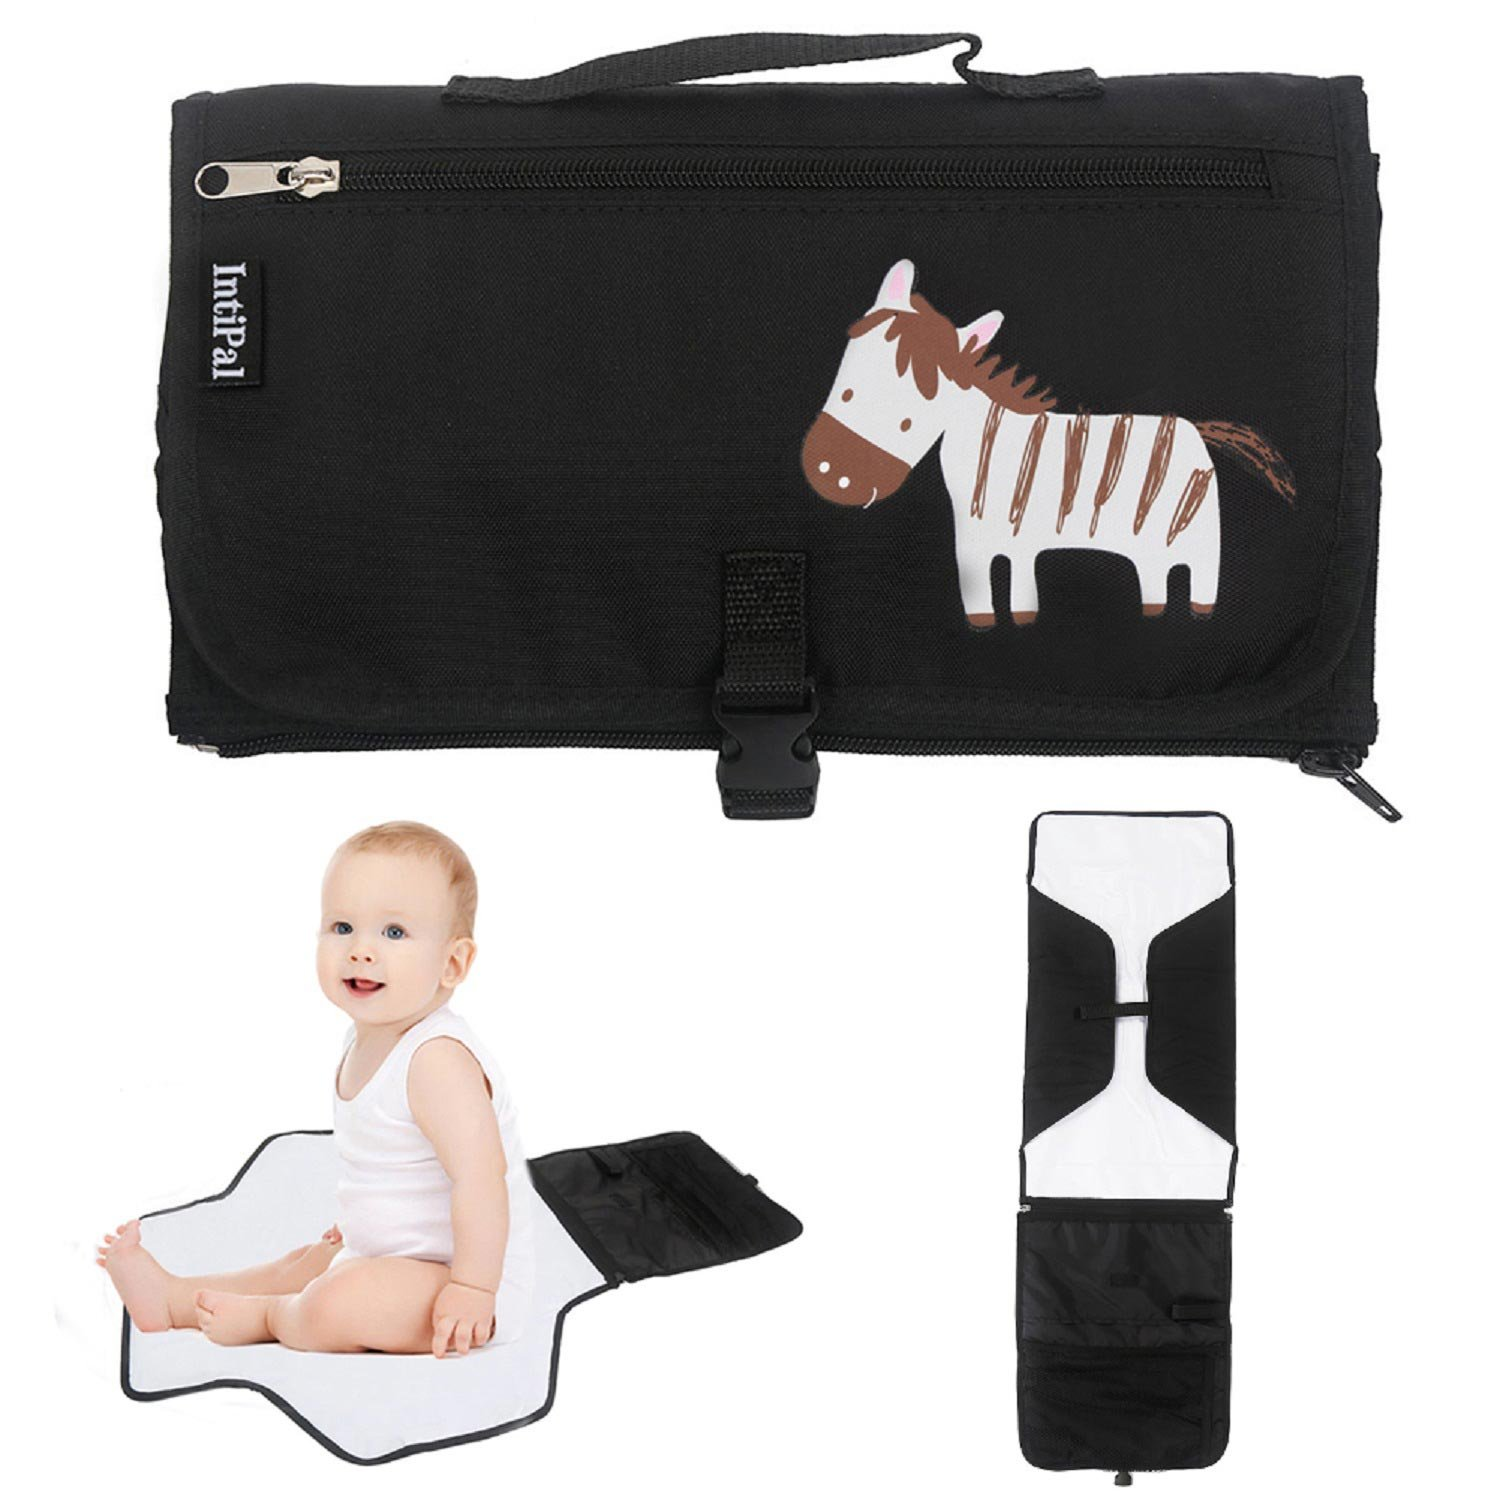 IntiPal Baby Diaper Changing Pad - Diaper Changing Mat with Storage Pockets - Portable Diaper Changing Station Kit Clutch for Travel and Home (Black Zebra)